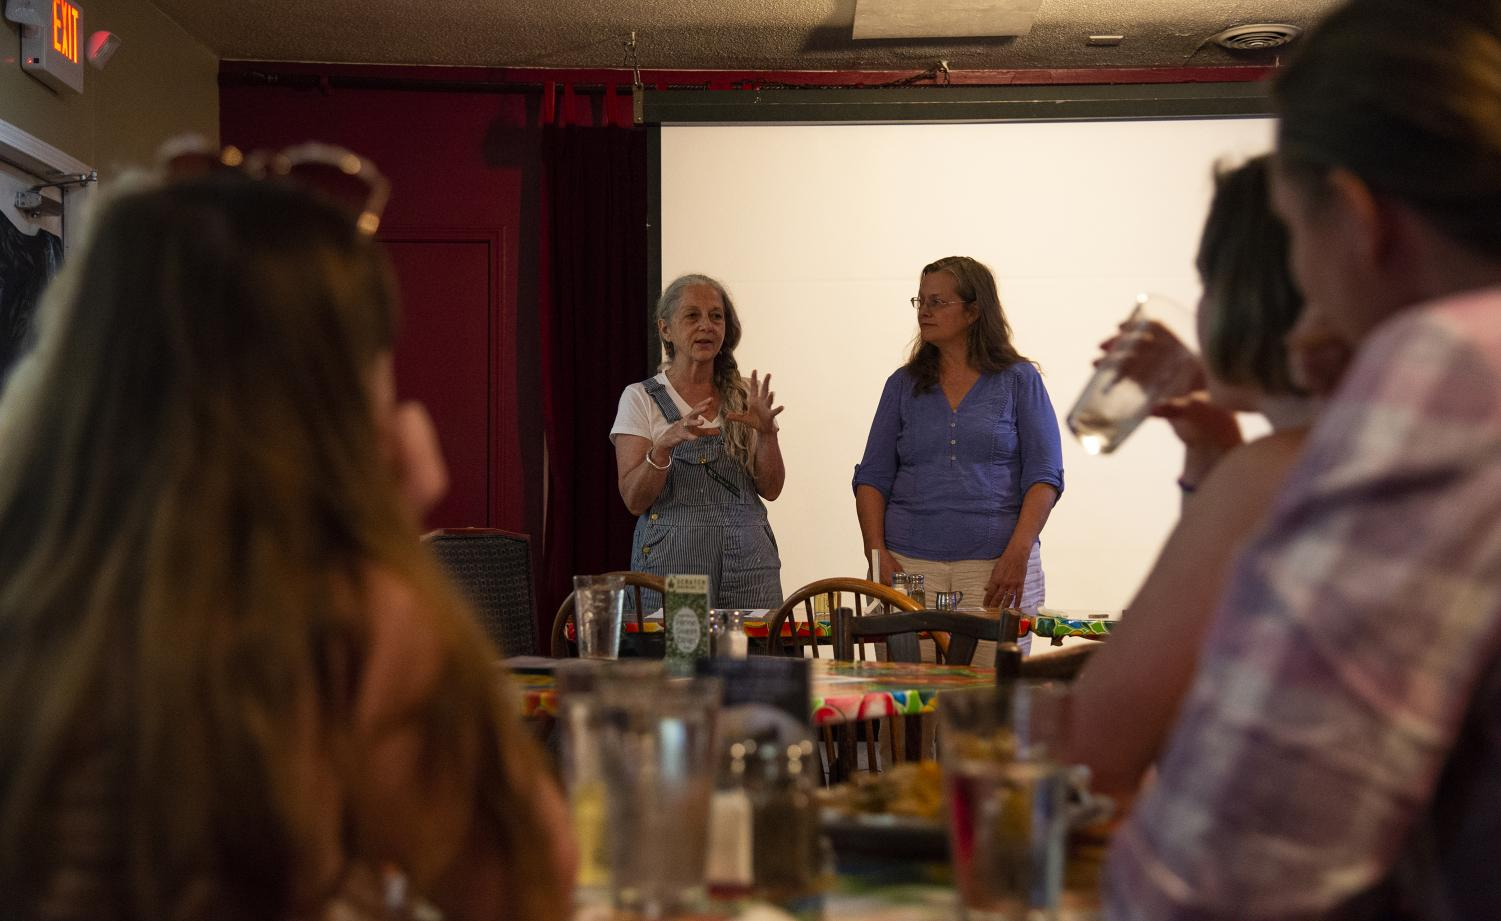 Elaine Ramseyer (left) and Jenn Pellow (right) discuss the sustainable measures their local businesses have adopted Wednesday, Sept. 5, 2018, at the Longbranch Cafe and Bakery in Carbondale. Ramseyer manages the Longbranch Cafe and Pellow manages the Town Square Market both located in Carbondale. (Cameron Hupp)